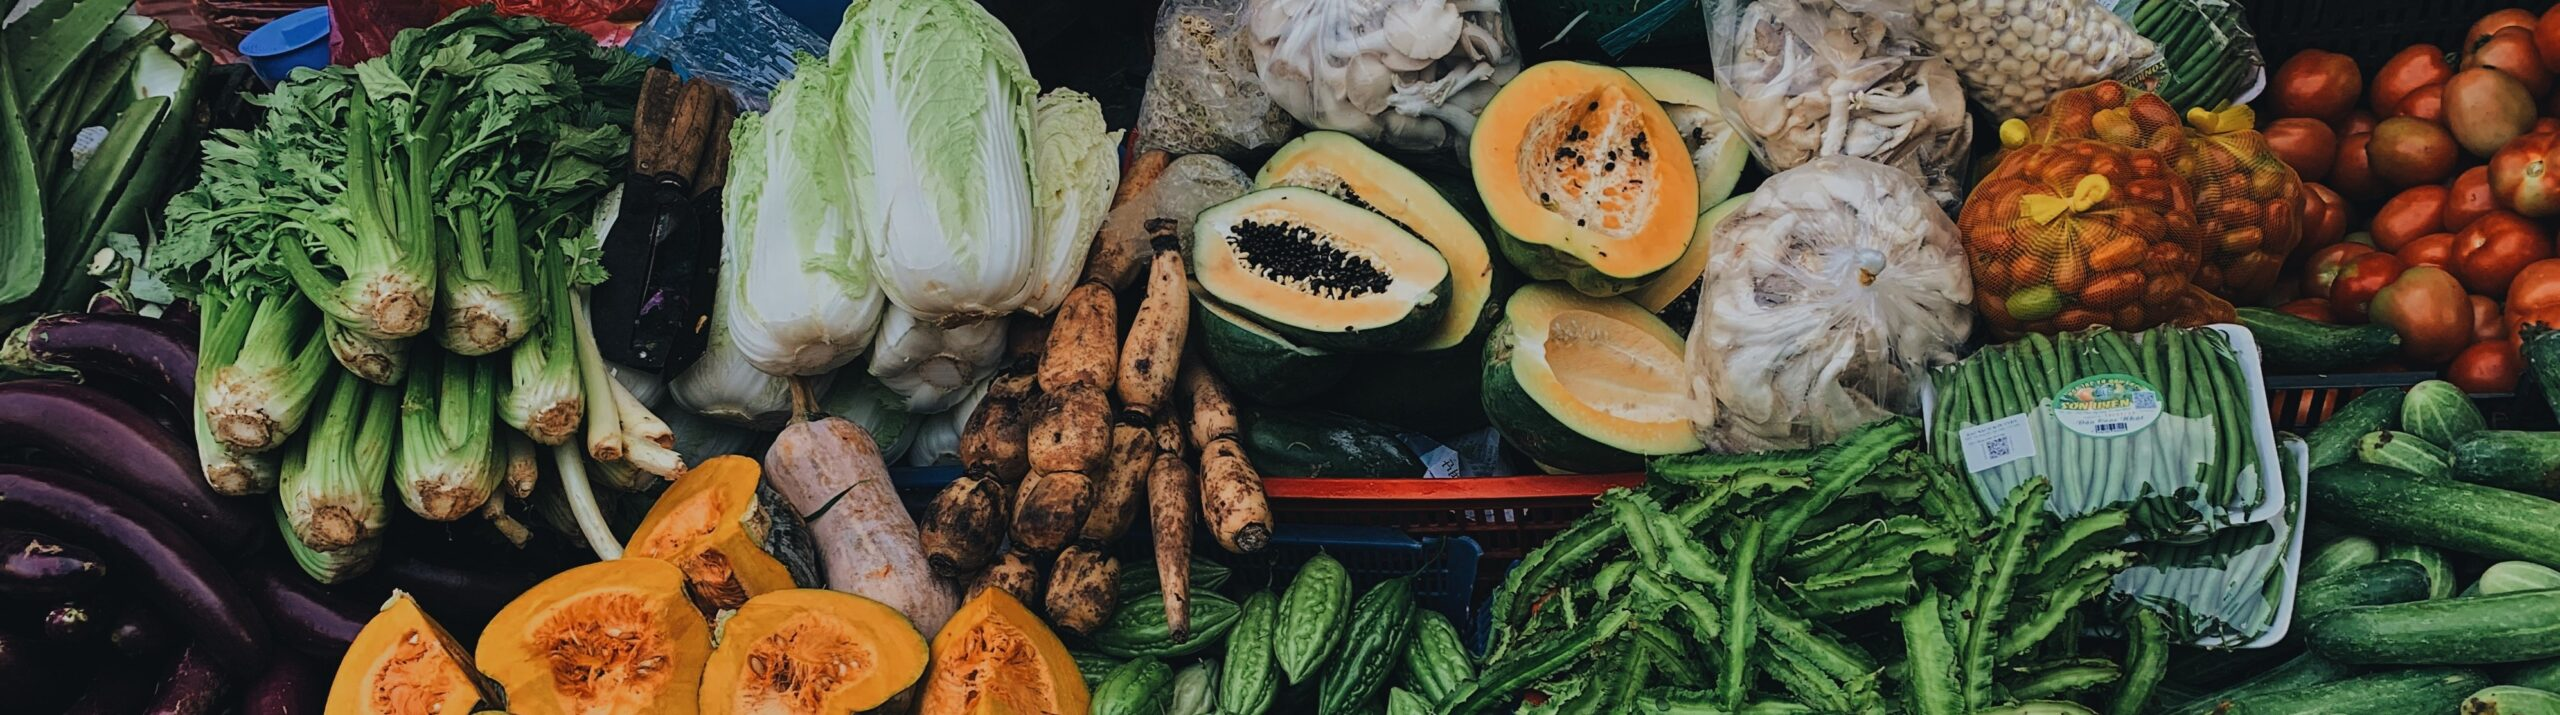 Group taking action              on vegetable front